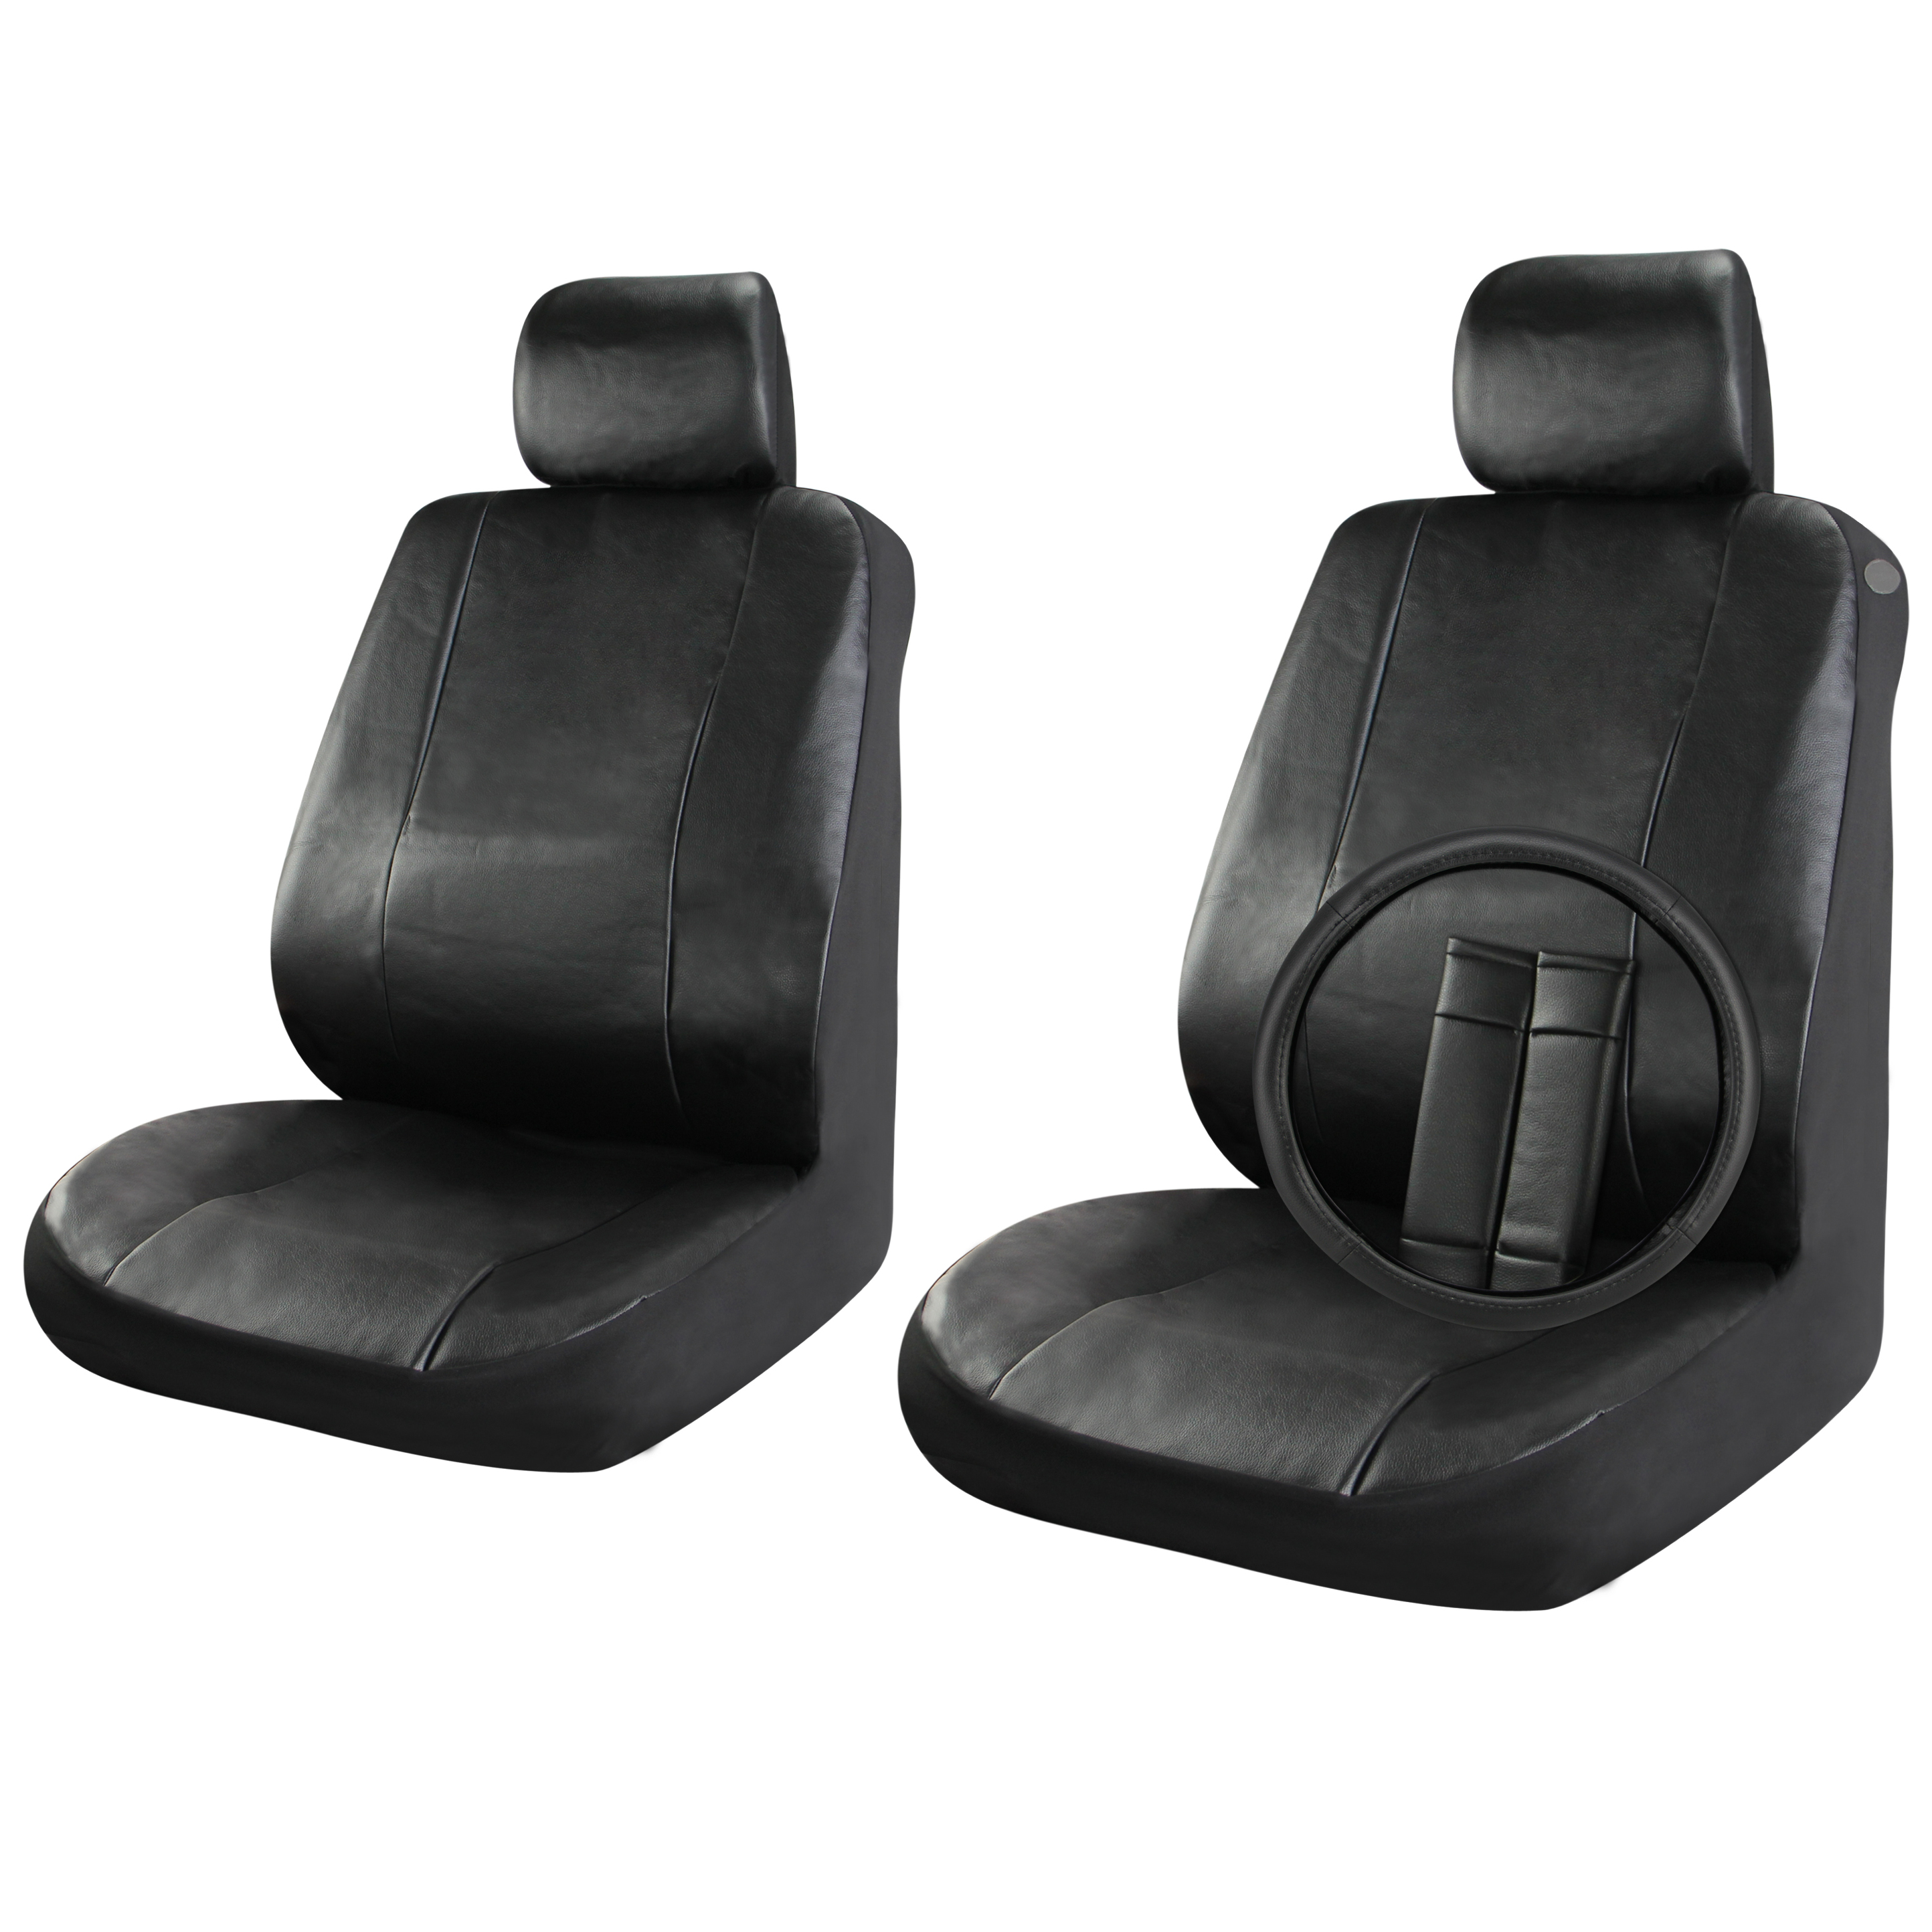 Heated Front Seats And Steering Wheel: Faux Leather Car Seat Covers Set Front Seats Solid Black